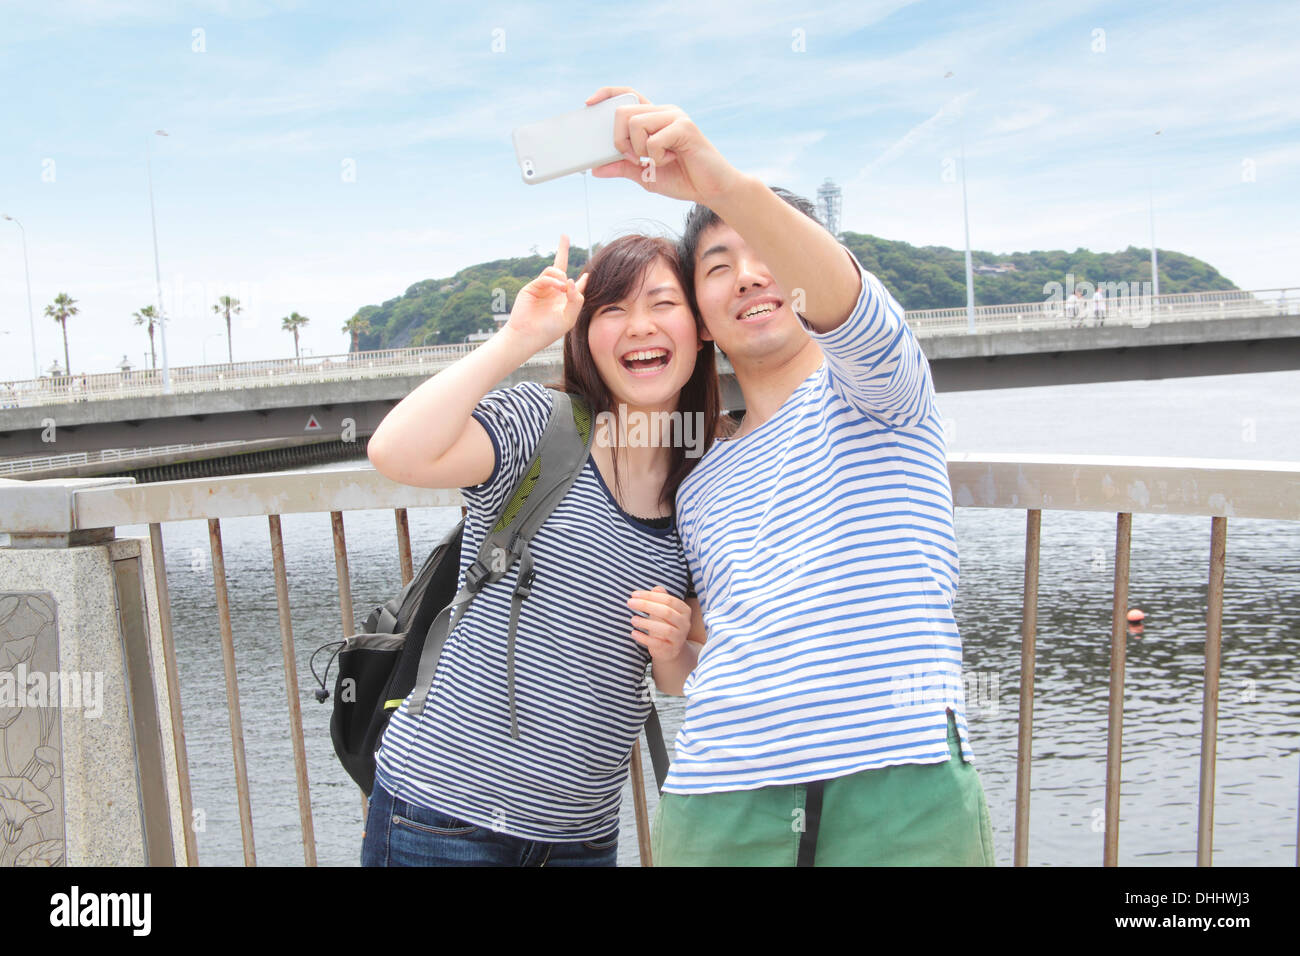 Young couple taking self portrait photograph with smartphone - Stock Image